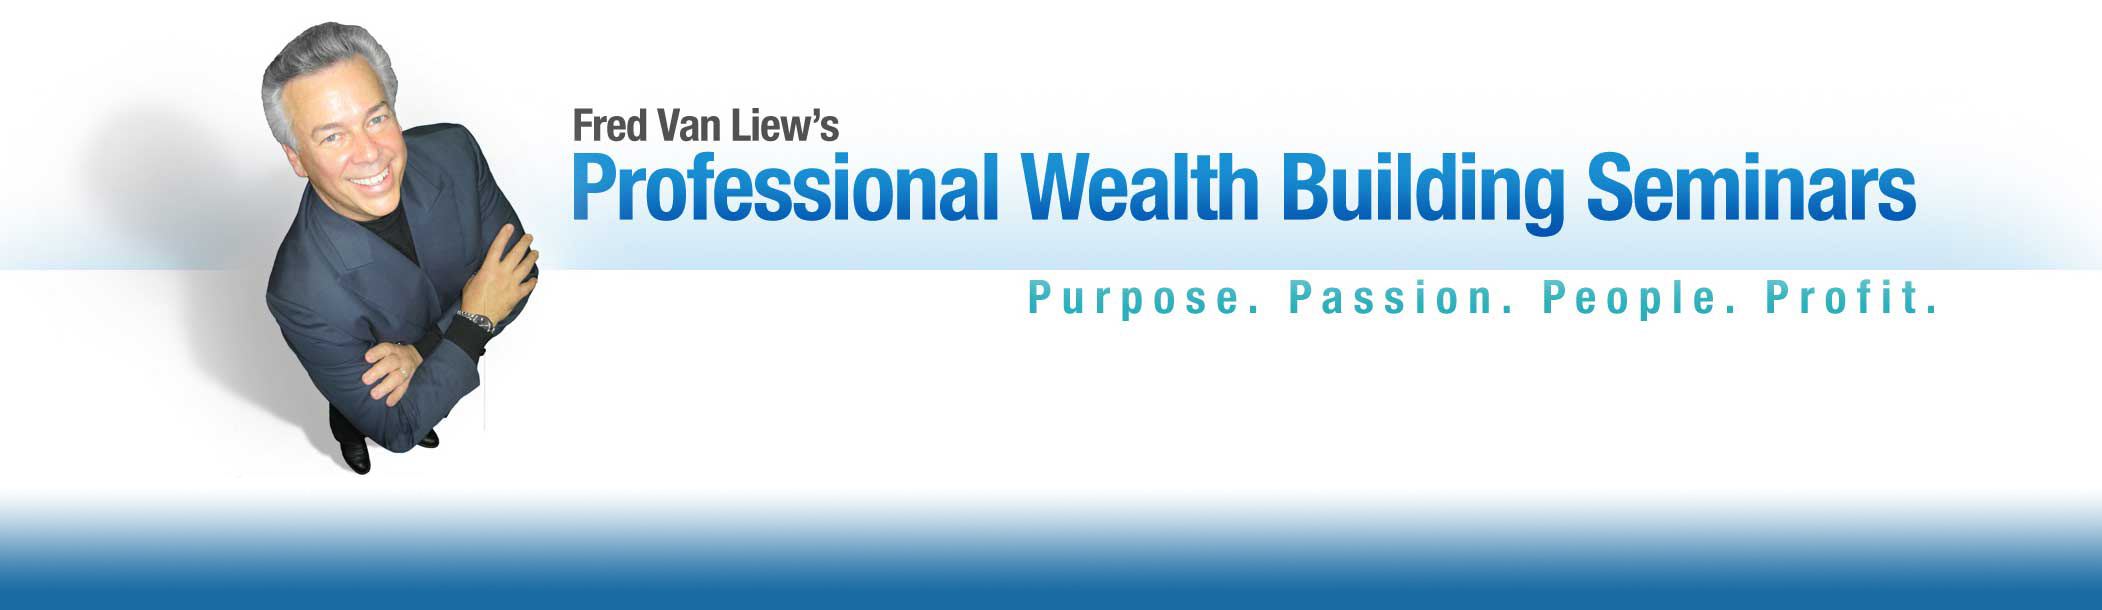 Professional Wealth Building